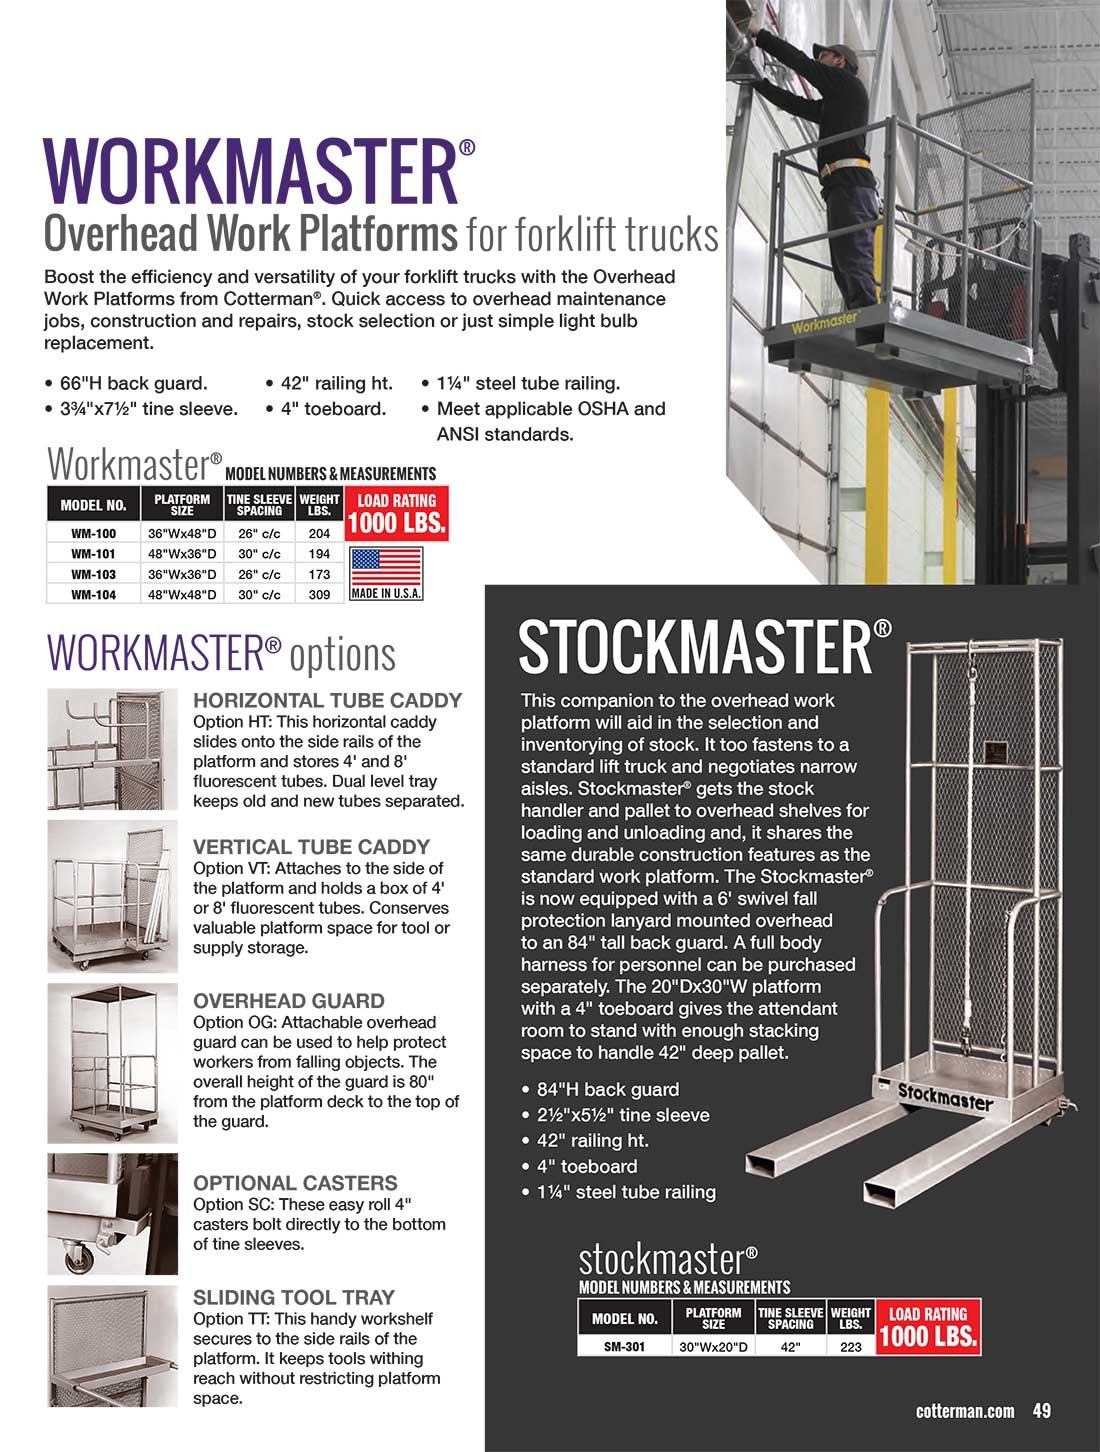 Cotterman Workmaster Lift Ladder Technical Specs